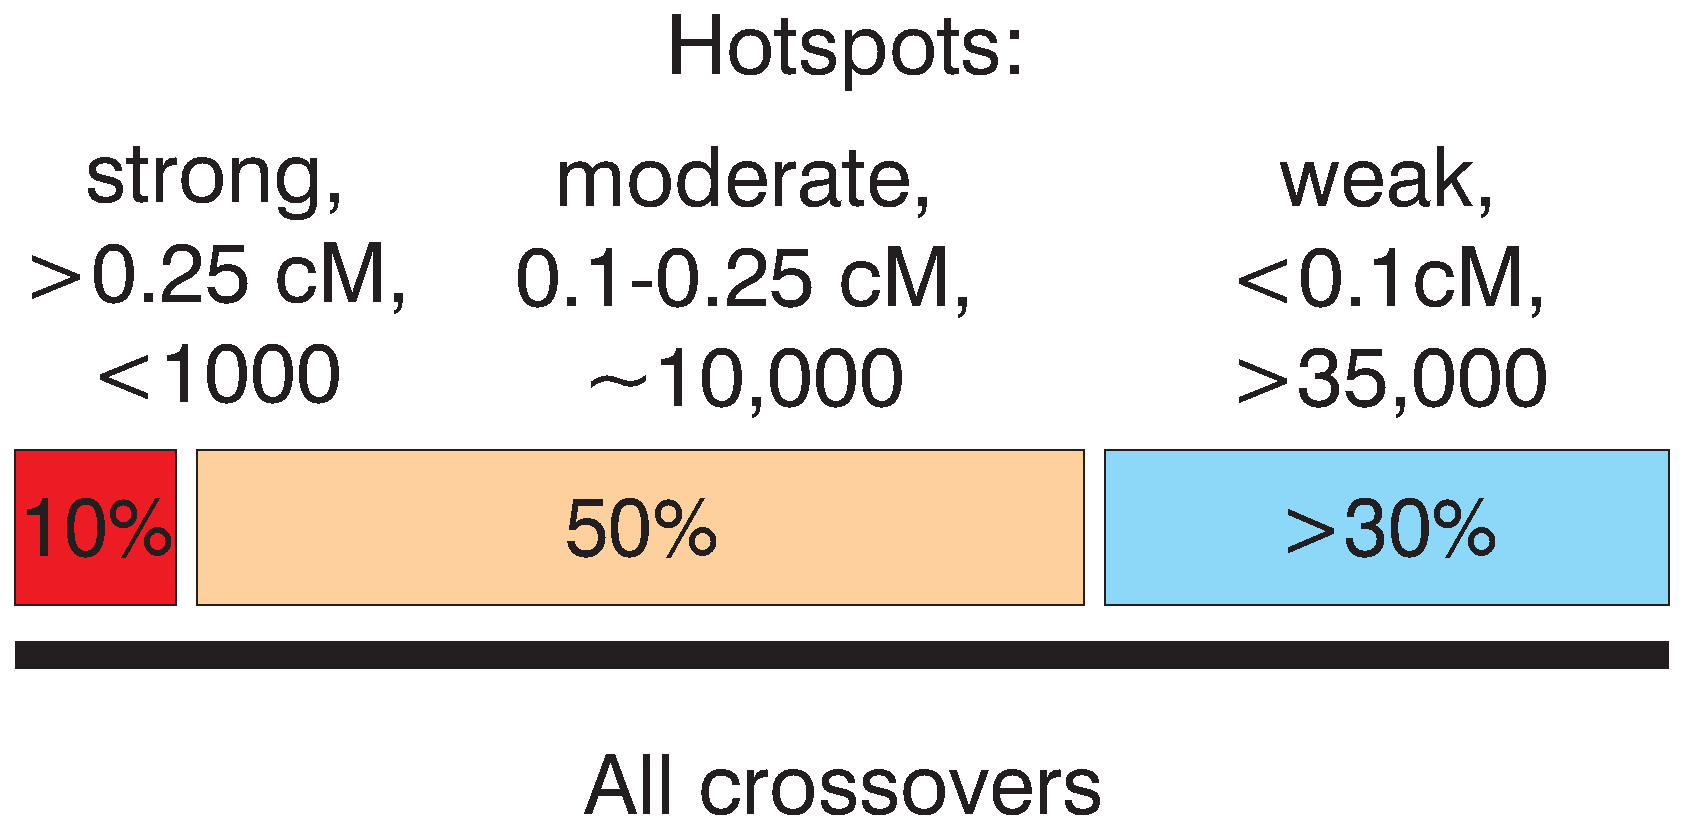 Schematic representation of the relative input of strong and weak hotspots to the total set of crossovers.